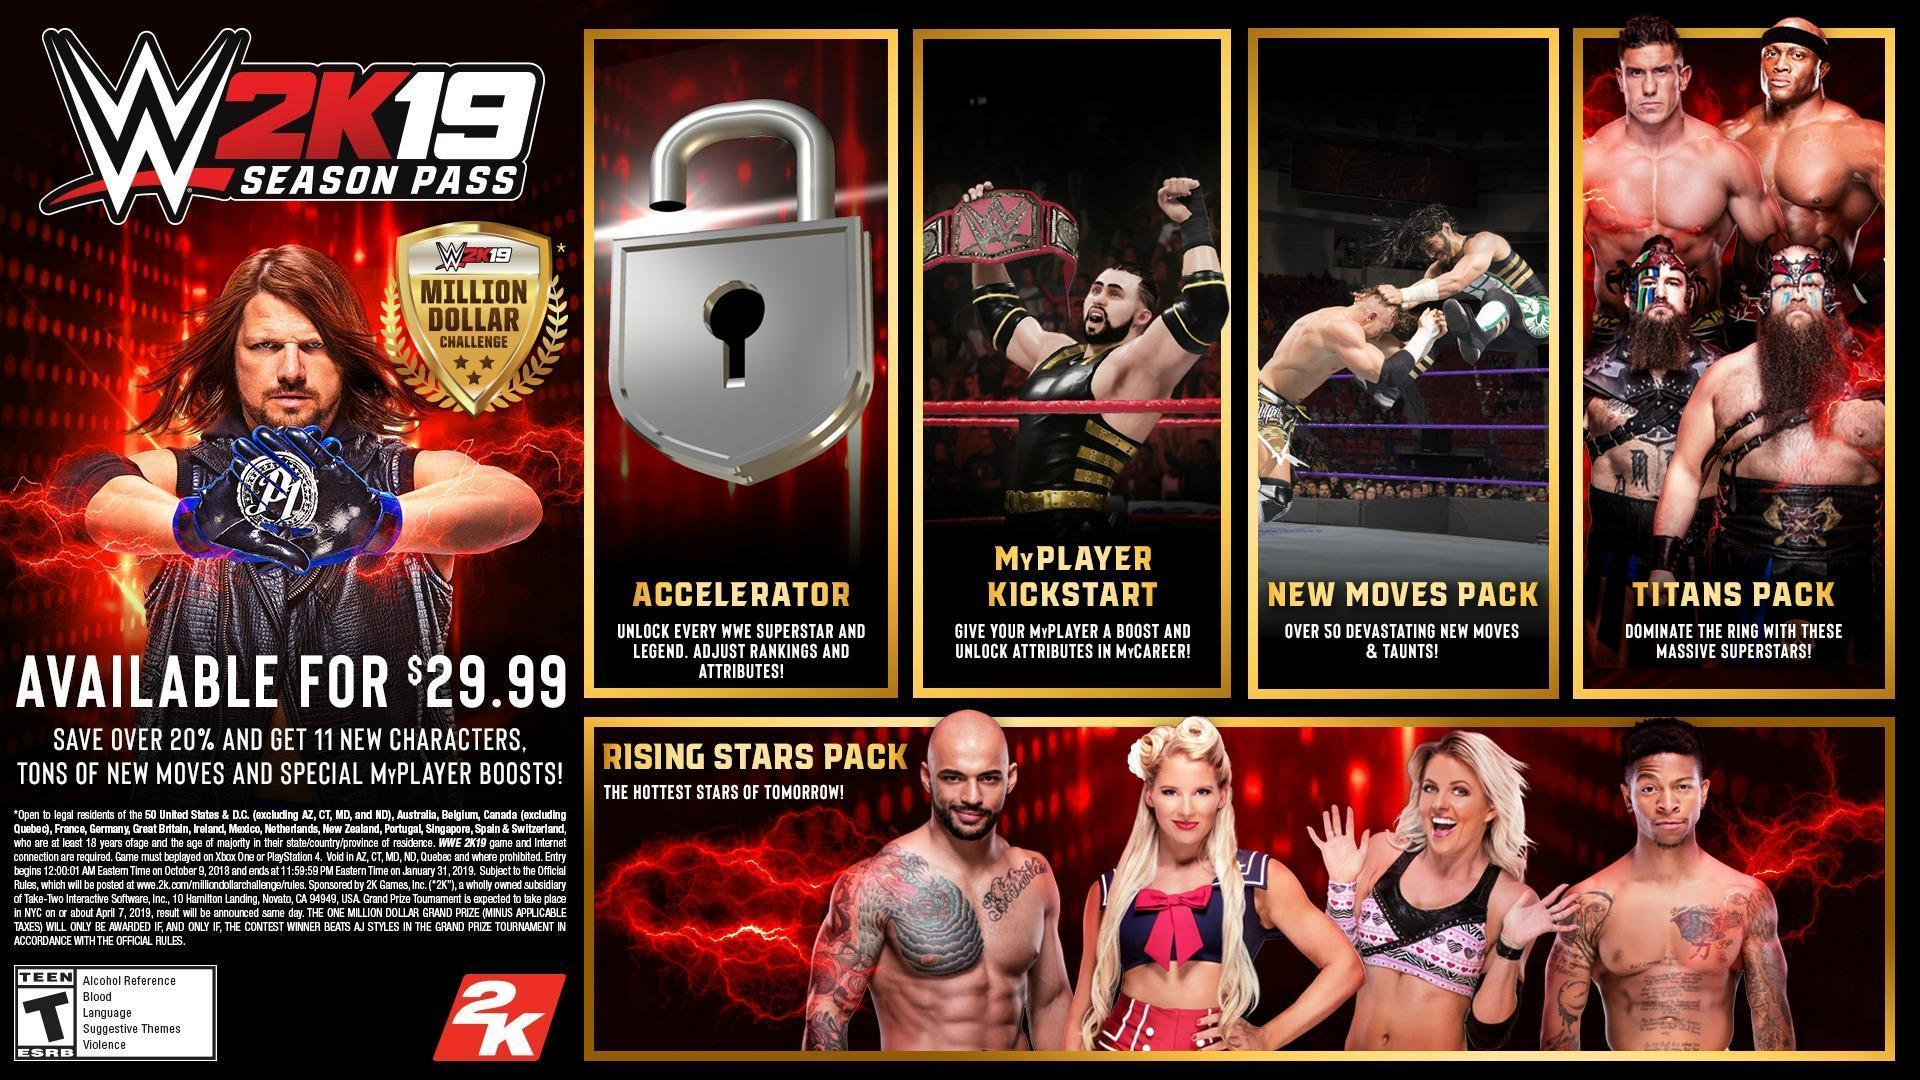 WWE 2K19 all dlc season pass infographic details